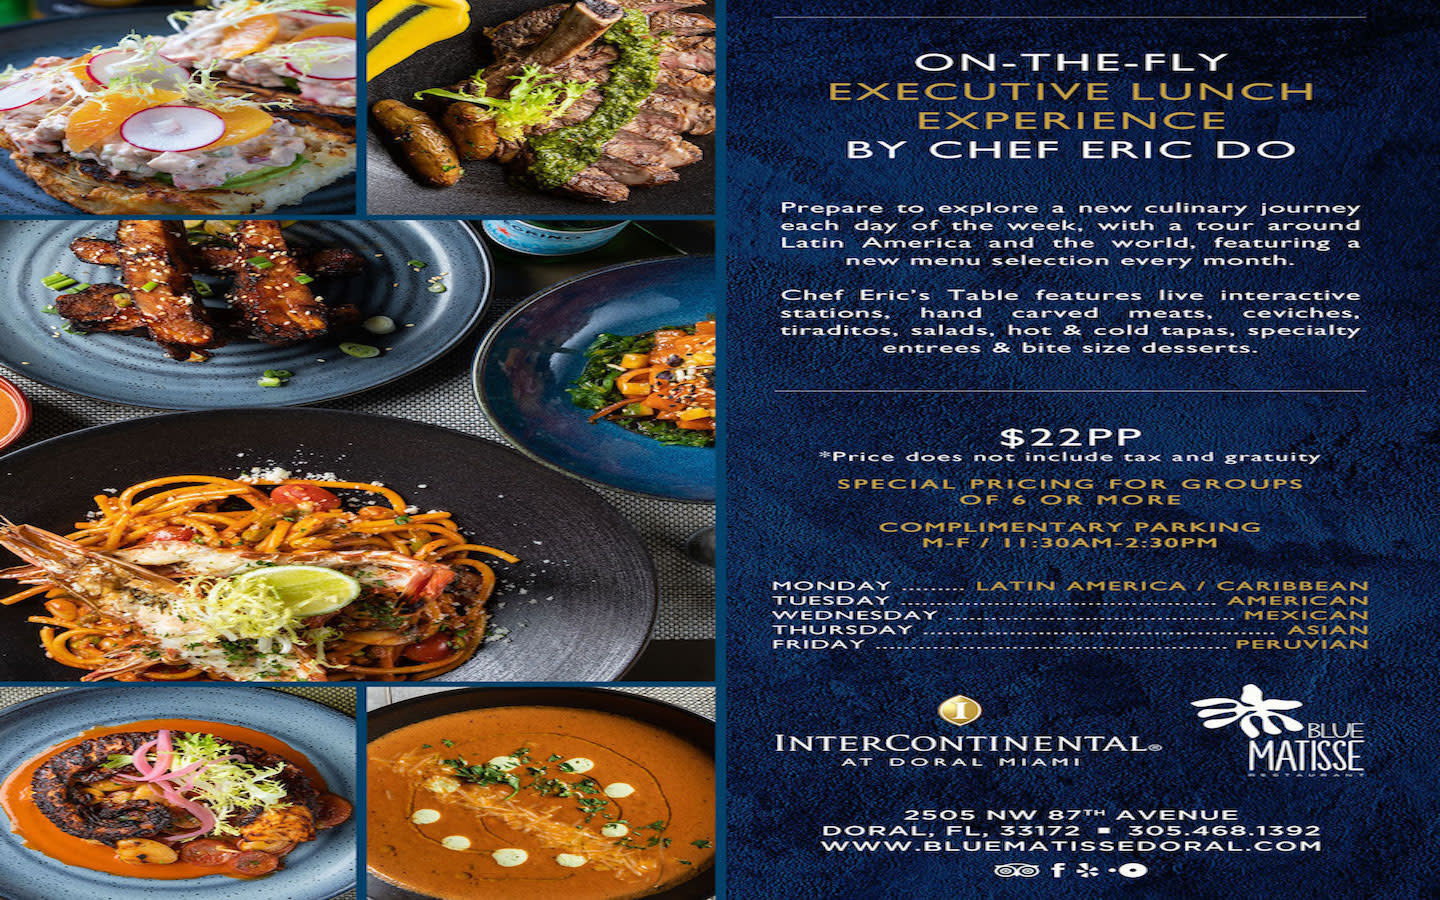 Executive Lunch Experience with Chef Eric Do